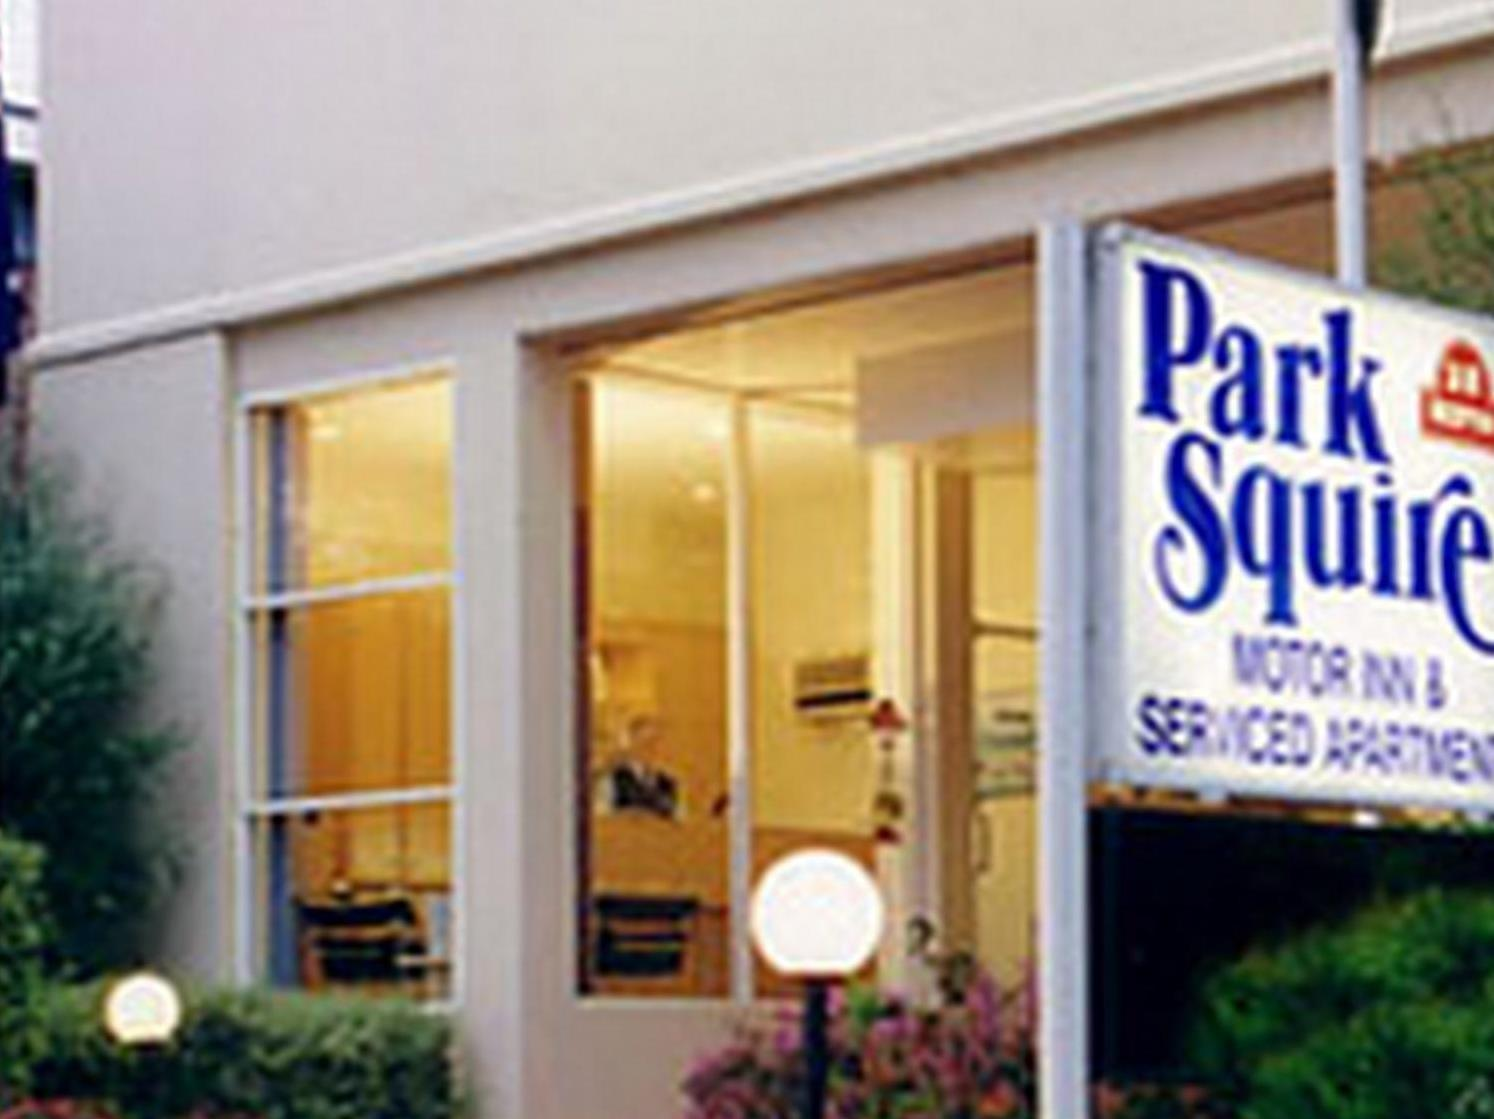 Hotell Park Squire Motor Inn and Serviced Apartment